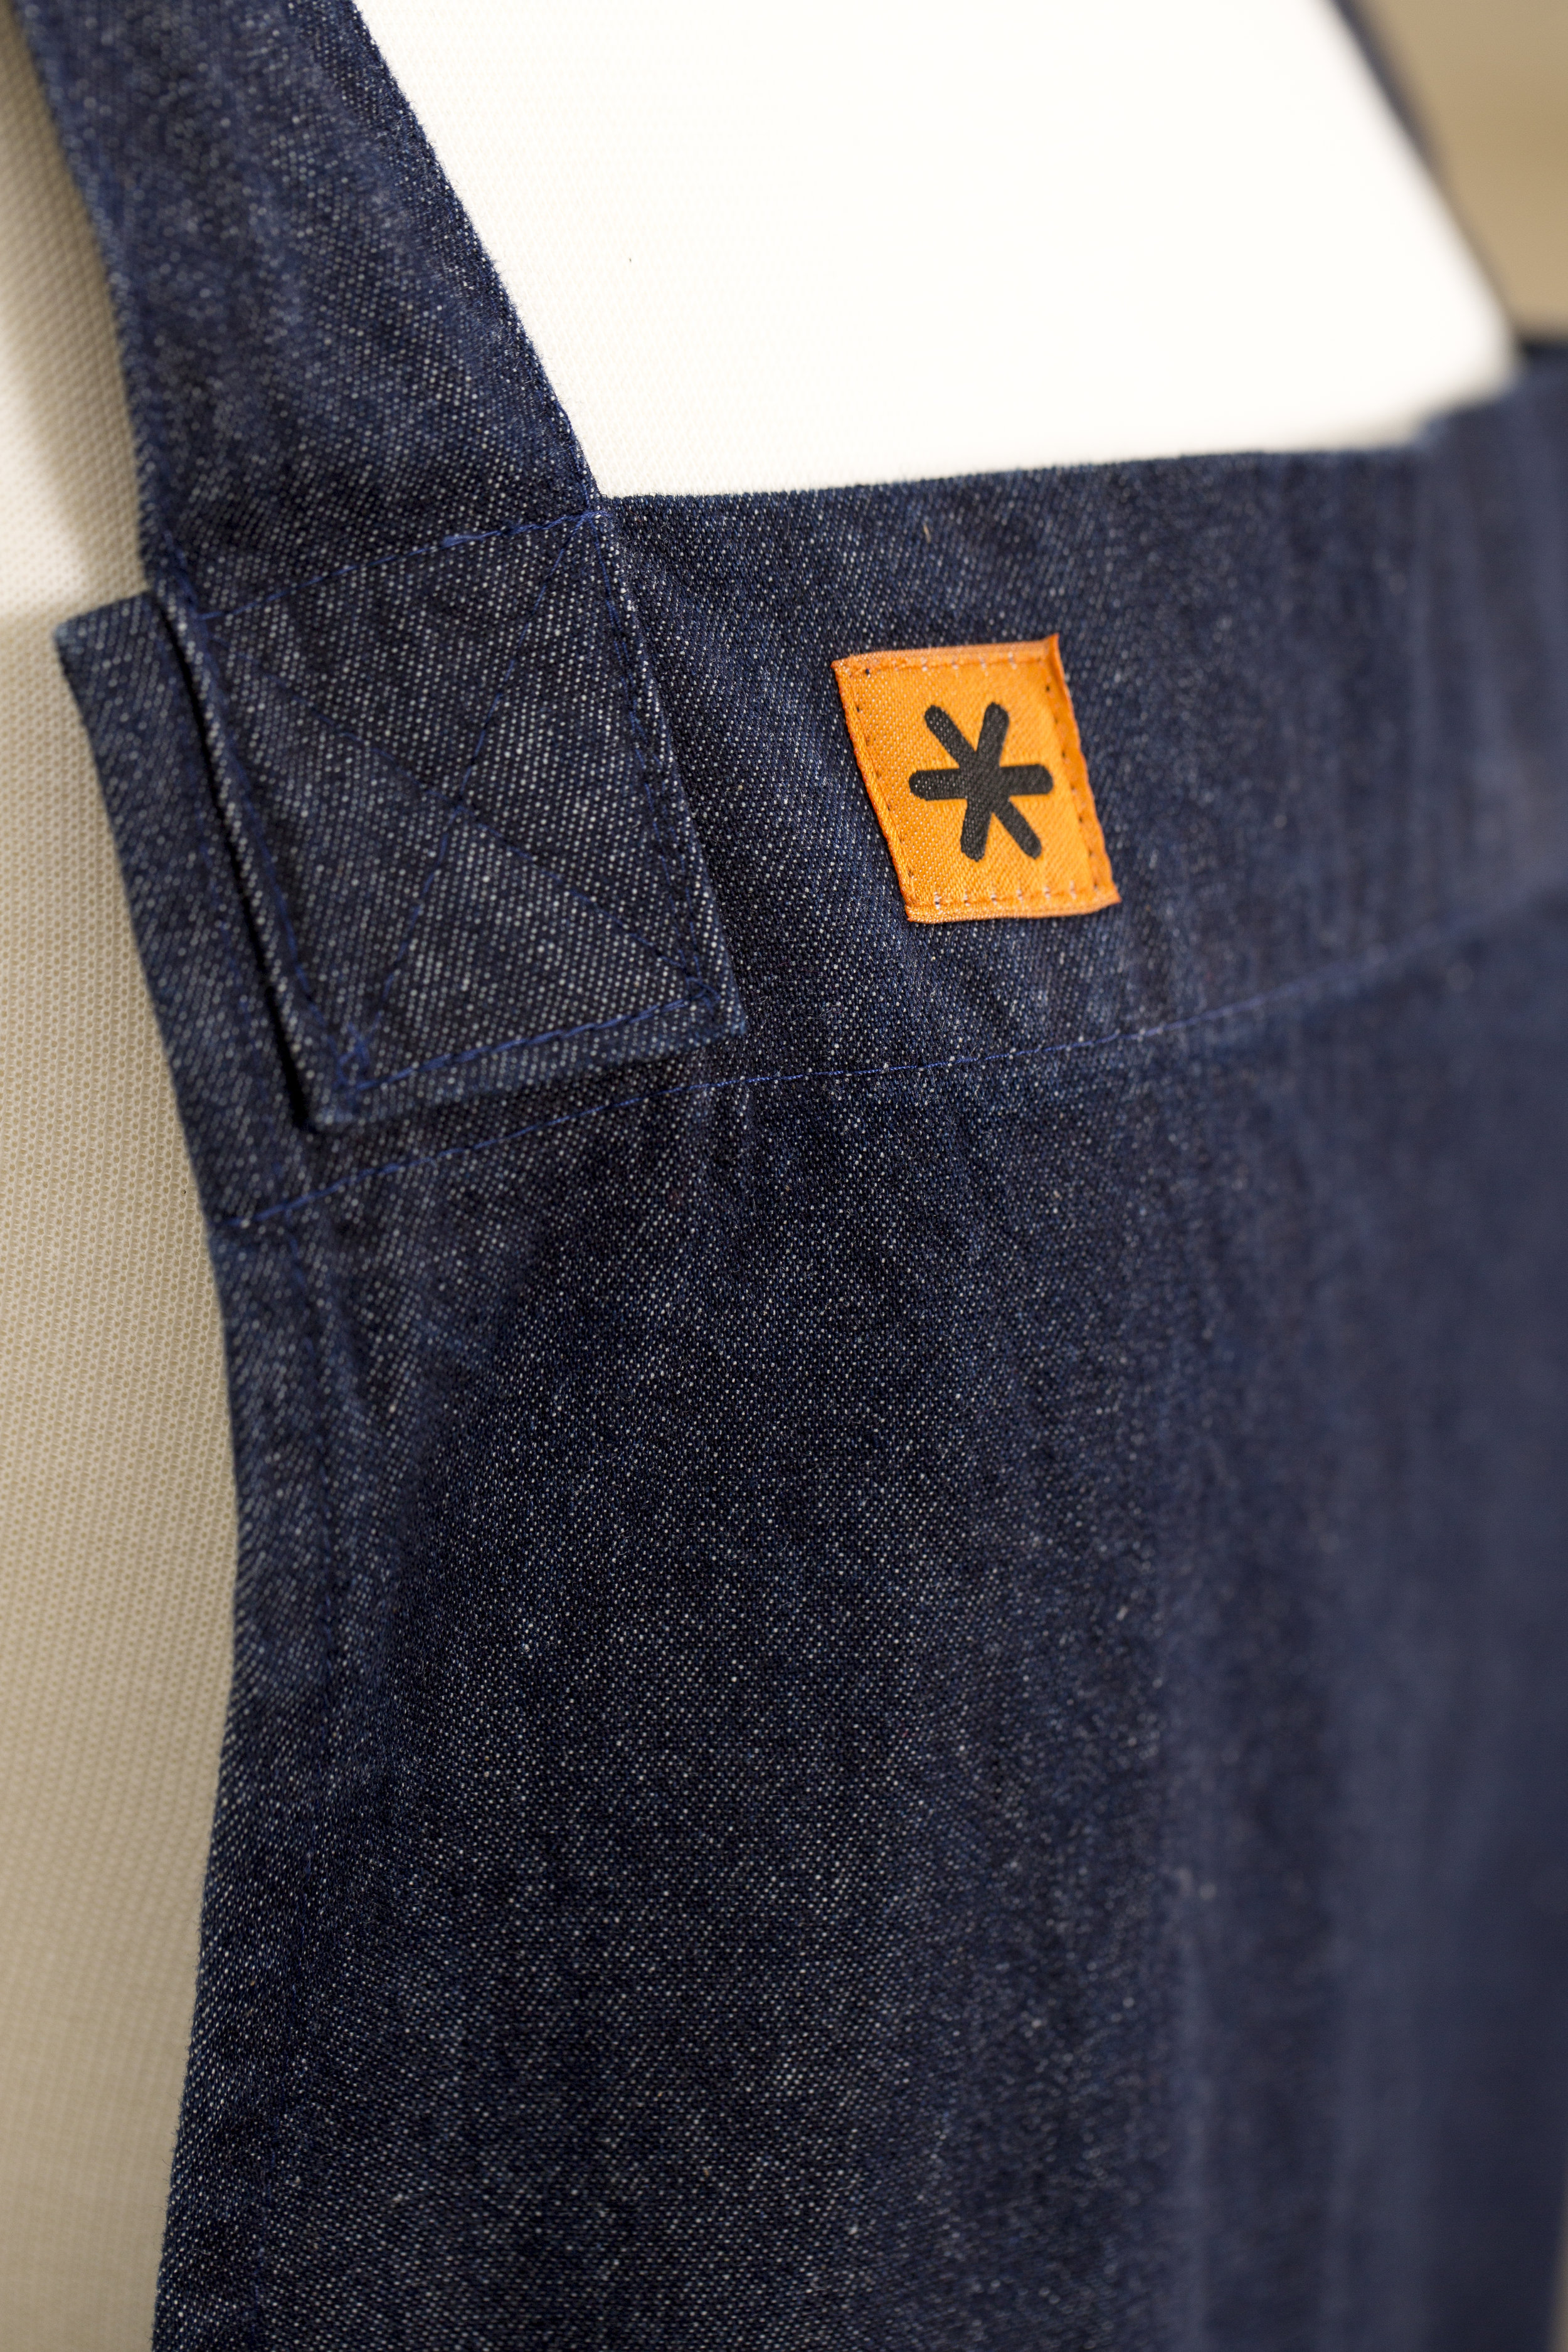 Detail of the Denim Susie Pianfore Apron from The Stitch Society.JPG